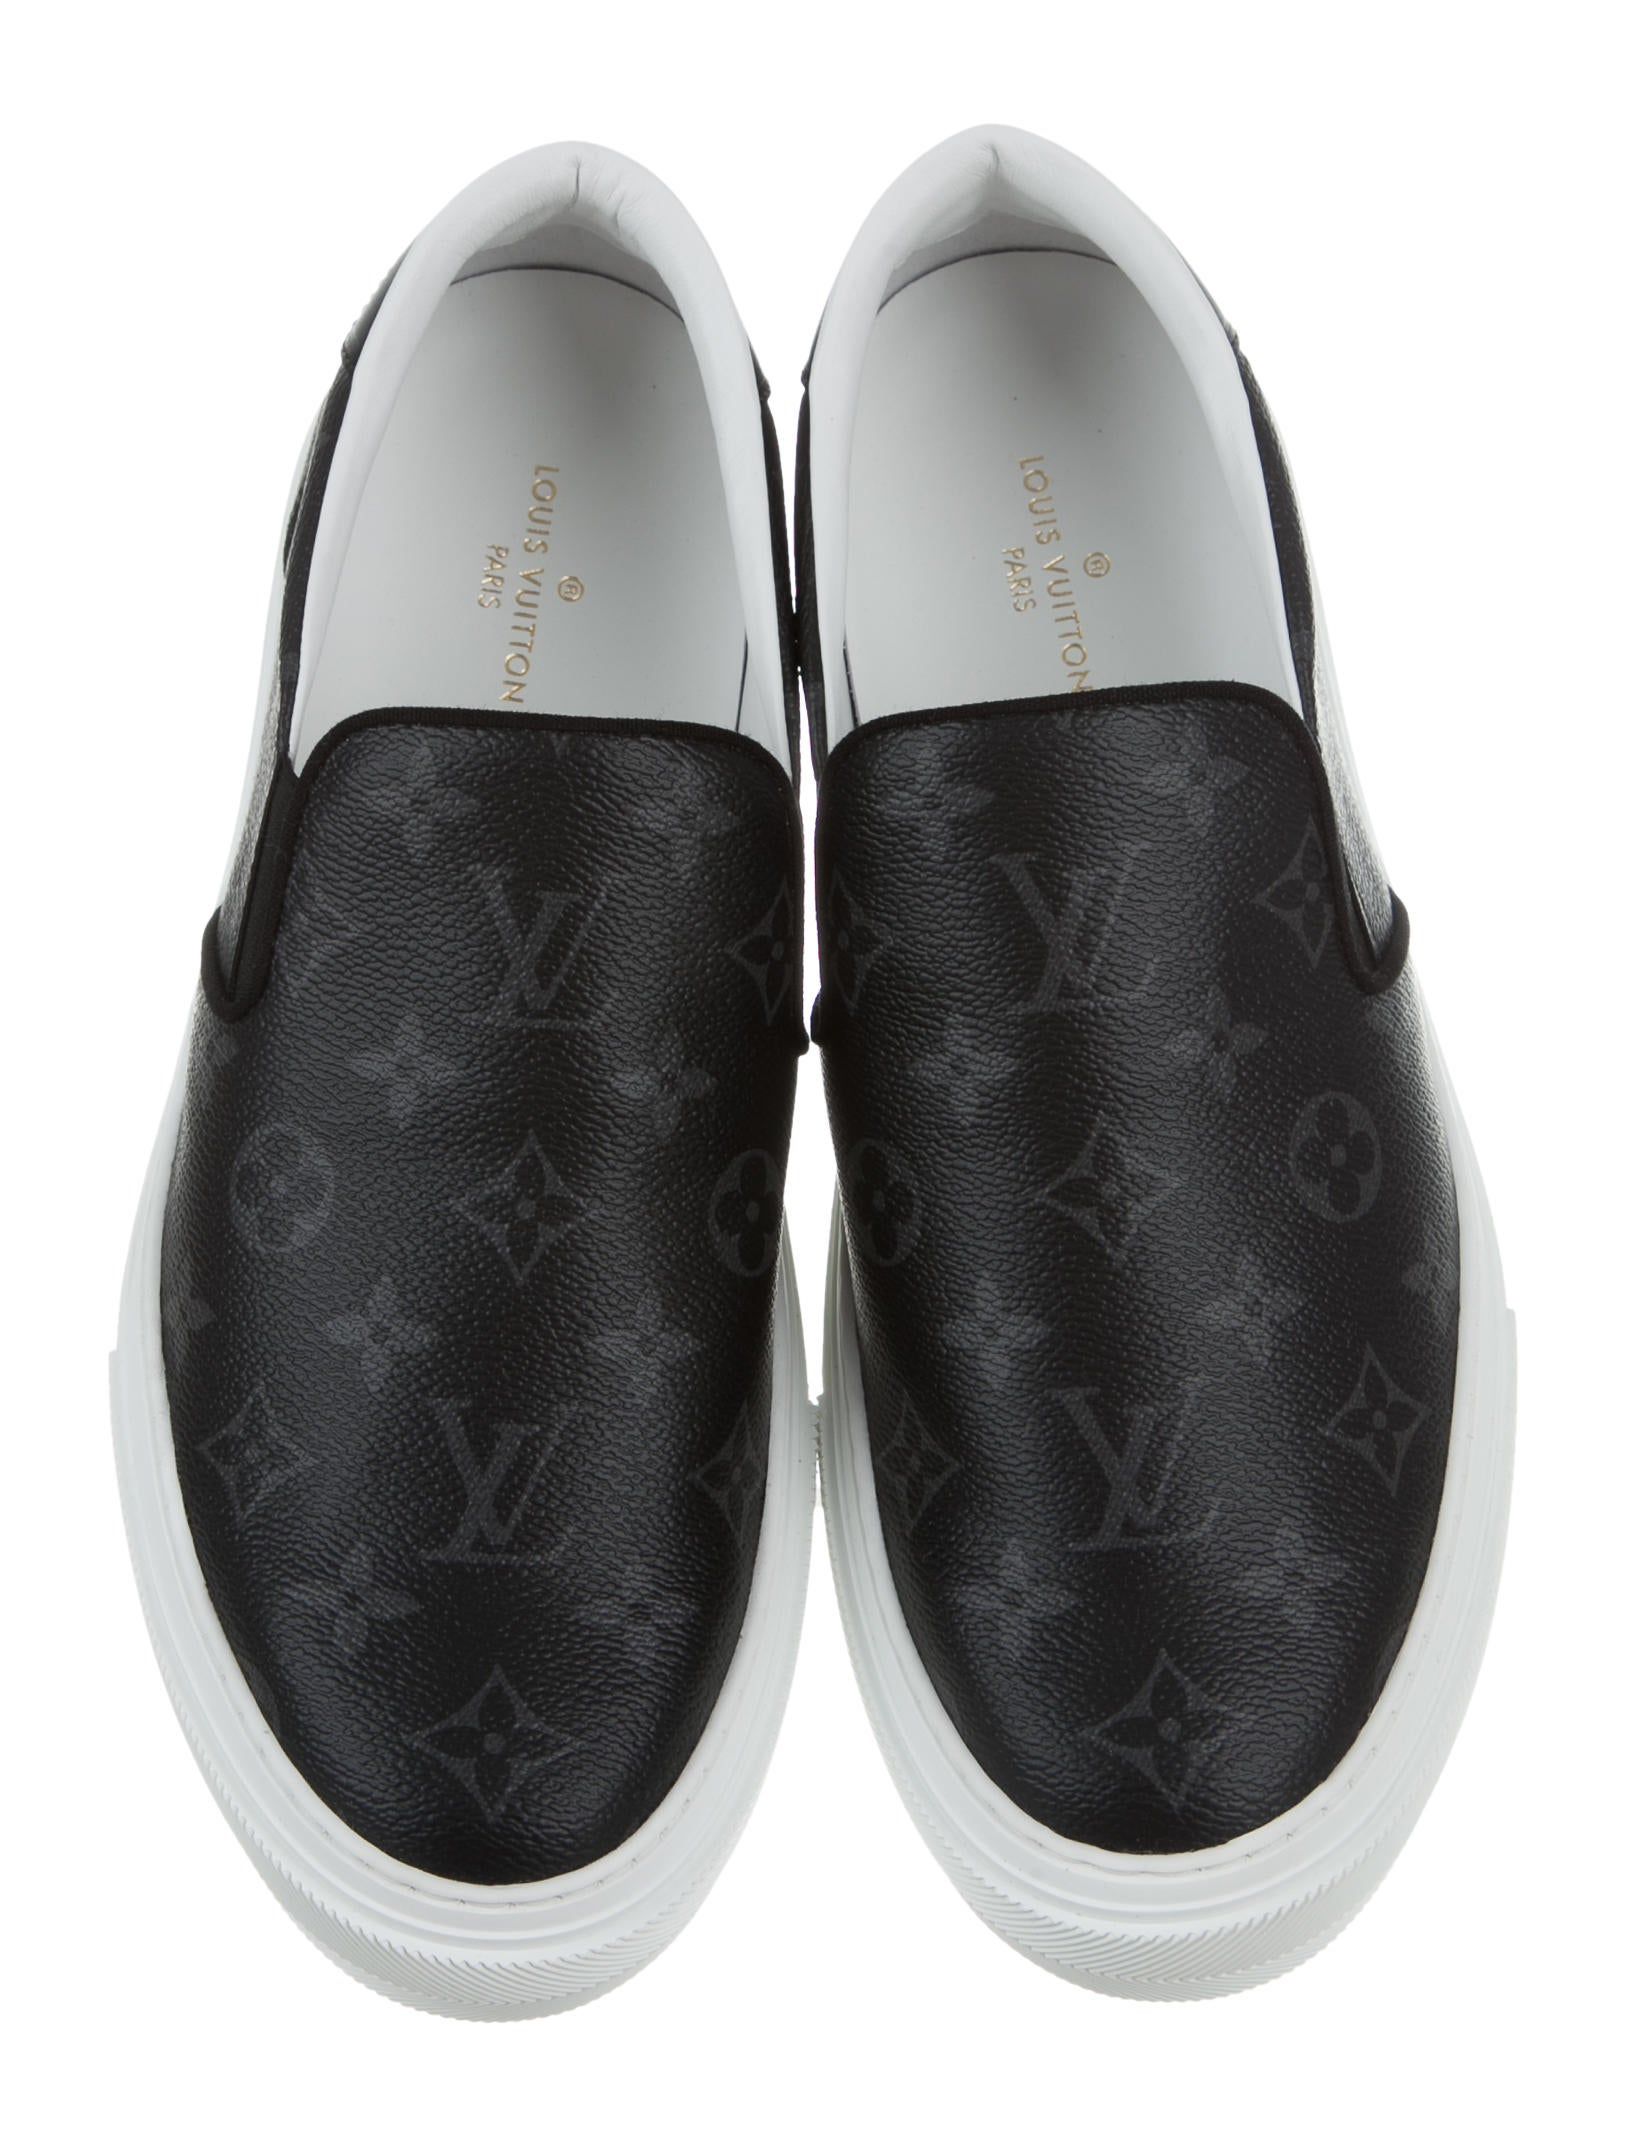 Louis Vuitton 2017 Trocadero Monogram Slip On Sneakers  : LOU1092223enlarged from www.therealreal.com size 1626 x 2145 jpeg 265kB